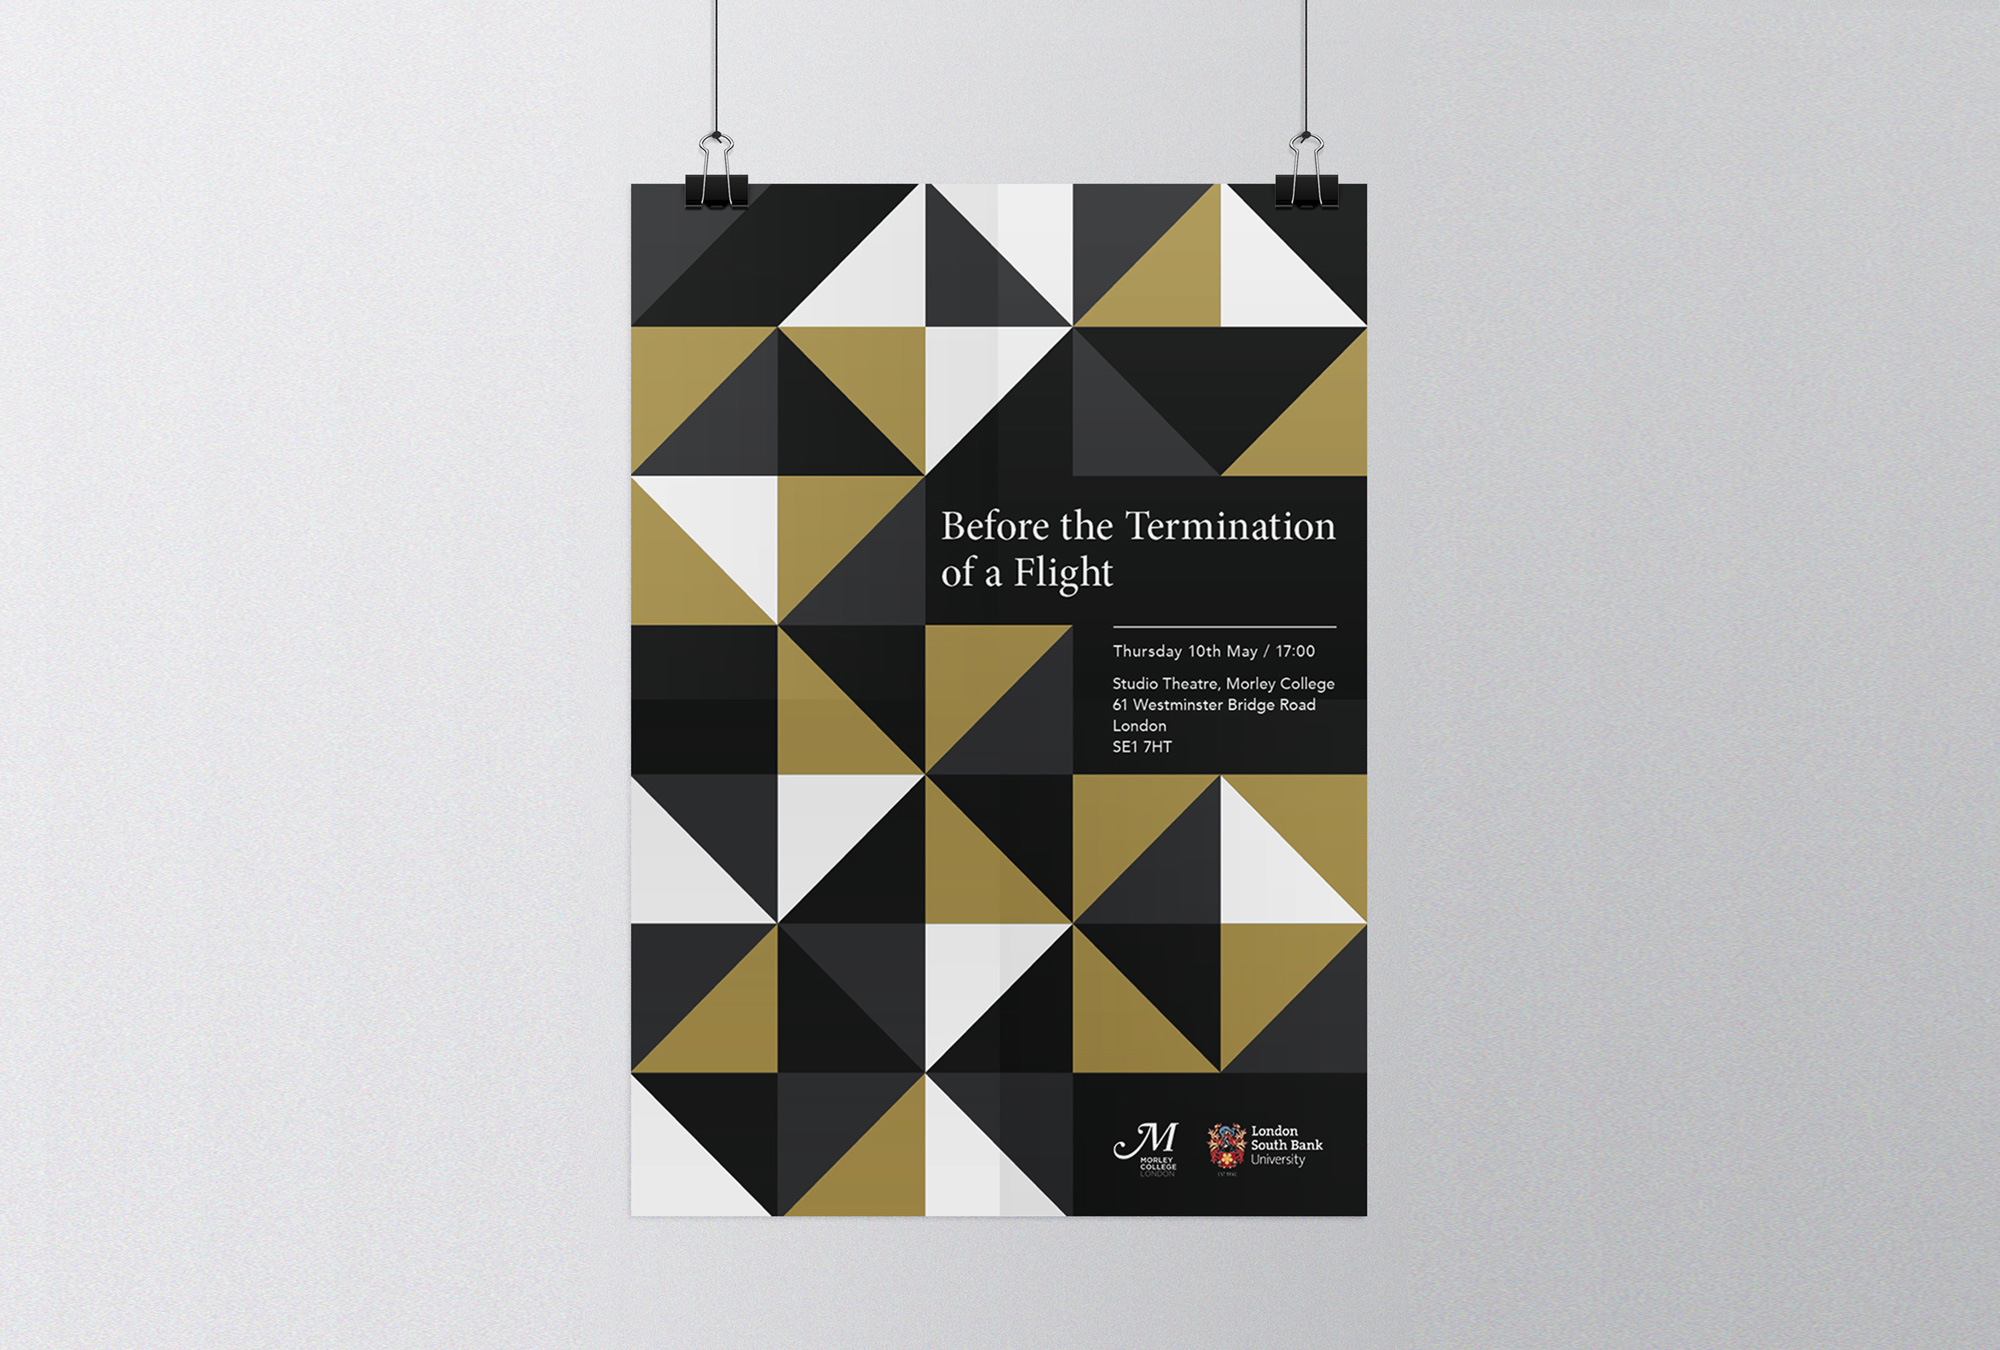 poster, exhibition, design